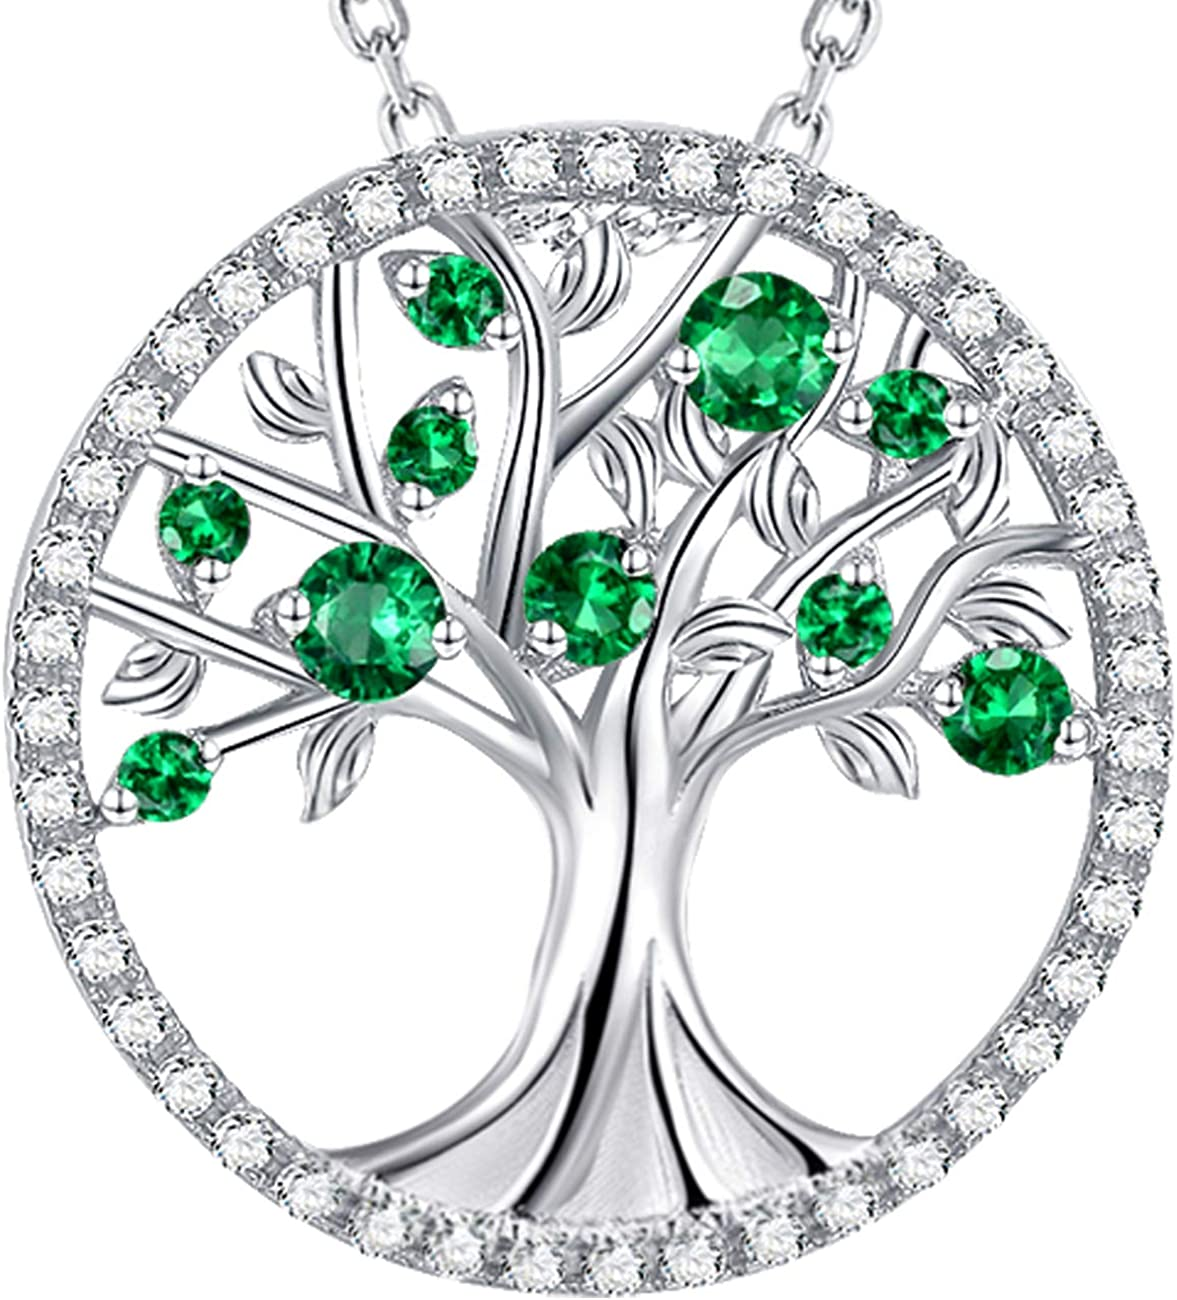 Valentines Day Jewelry Gifts for Wife Fiancee Tree of Life ...